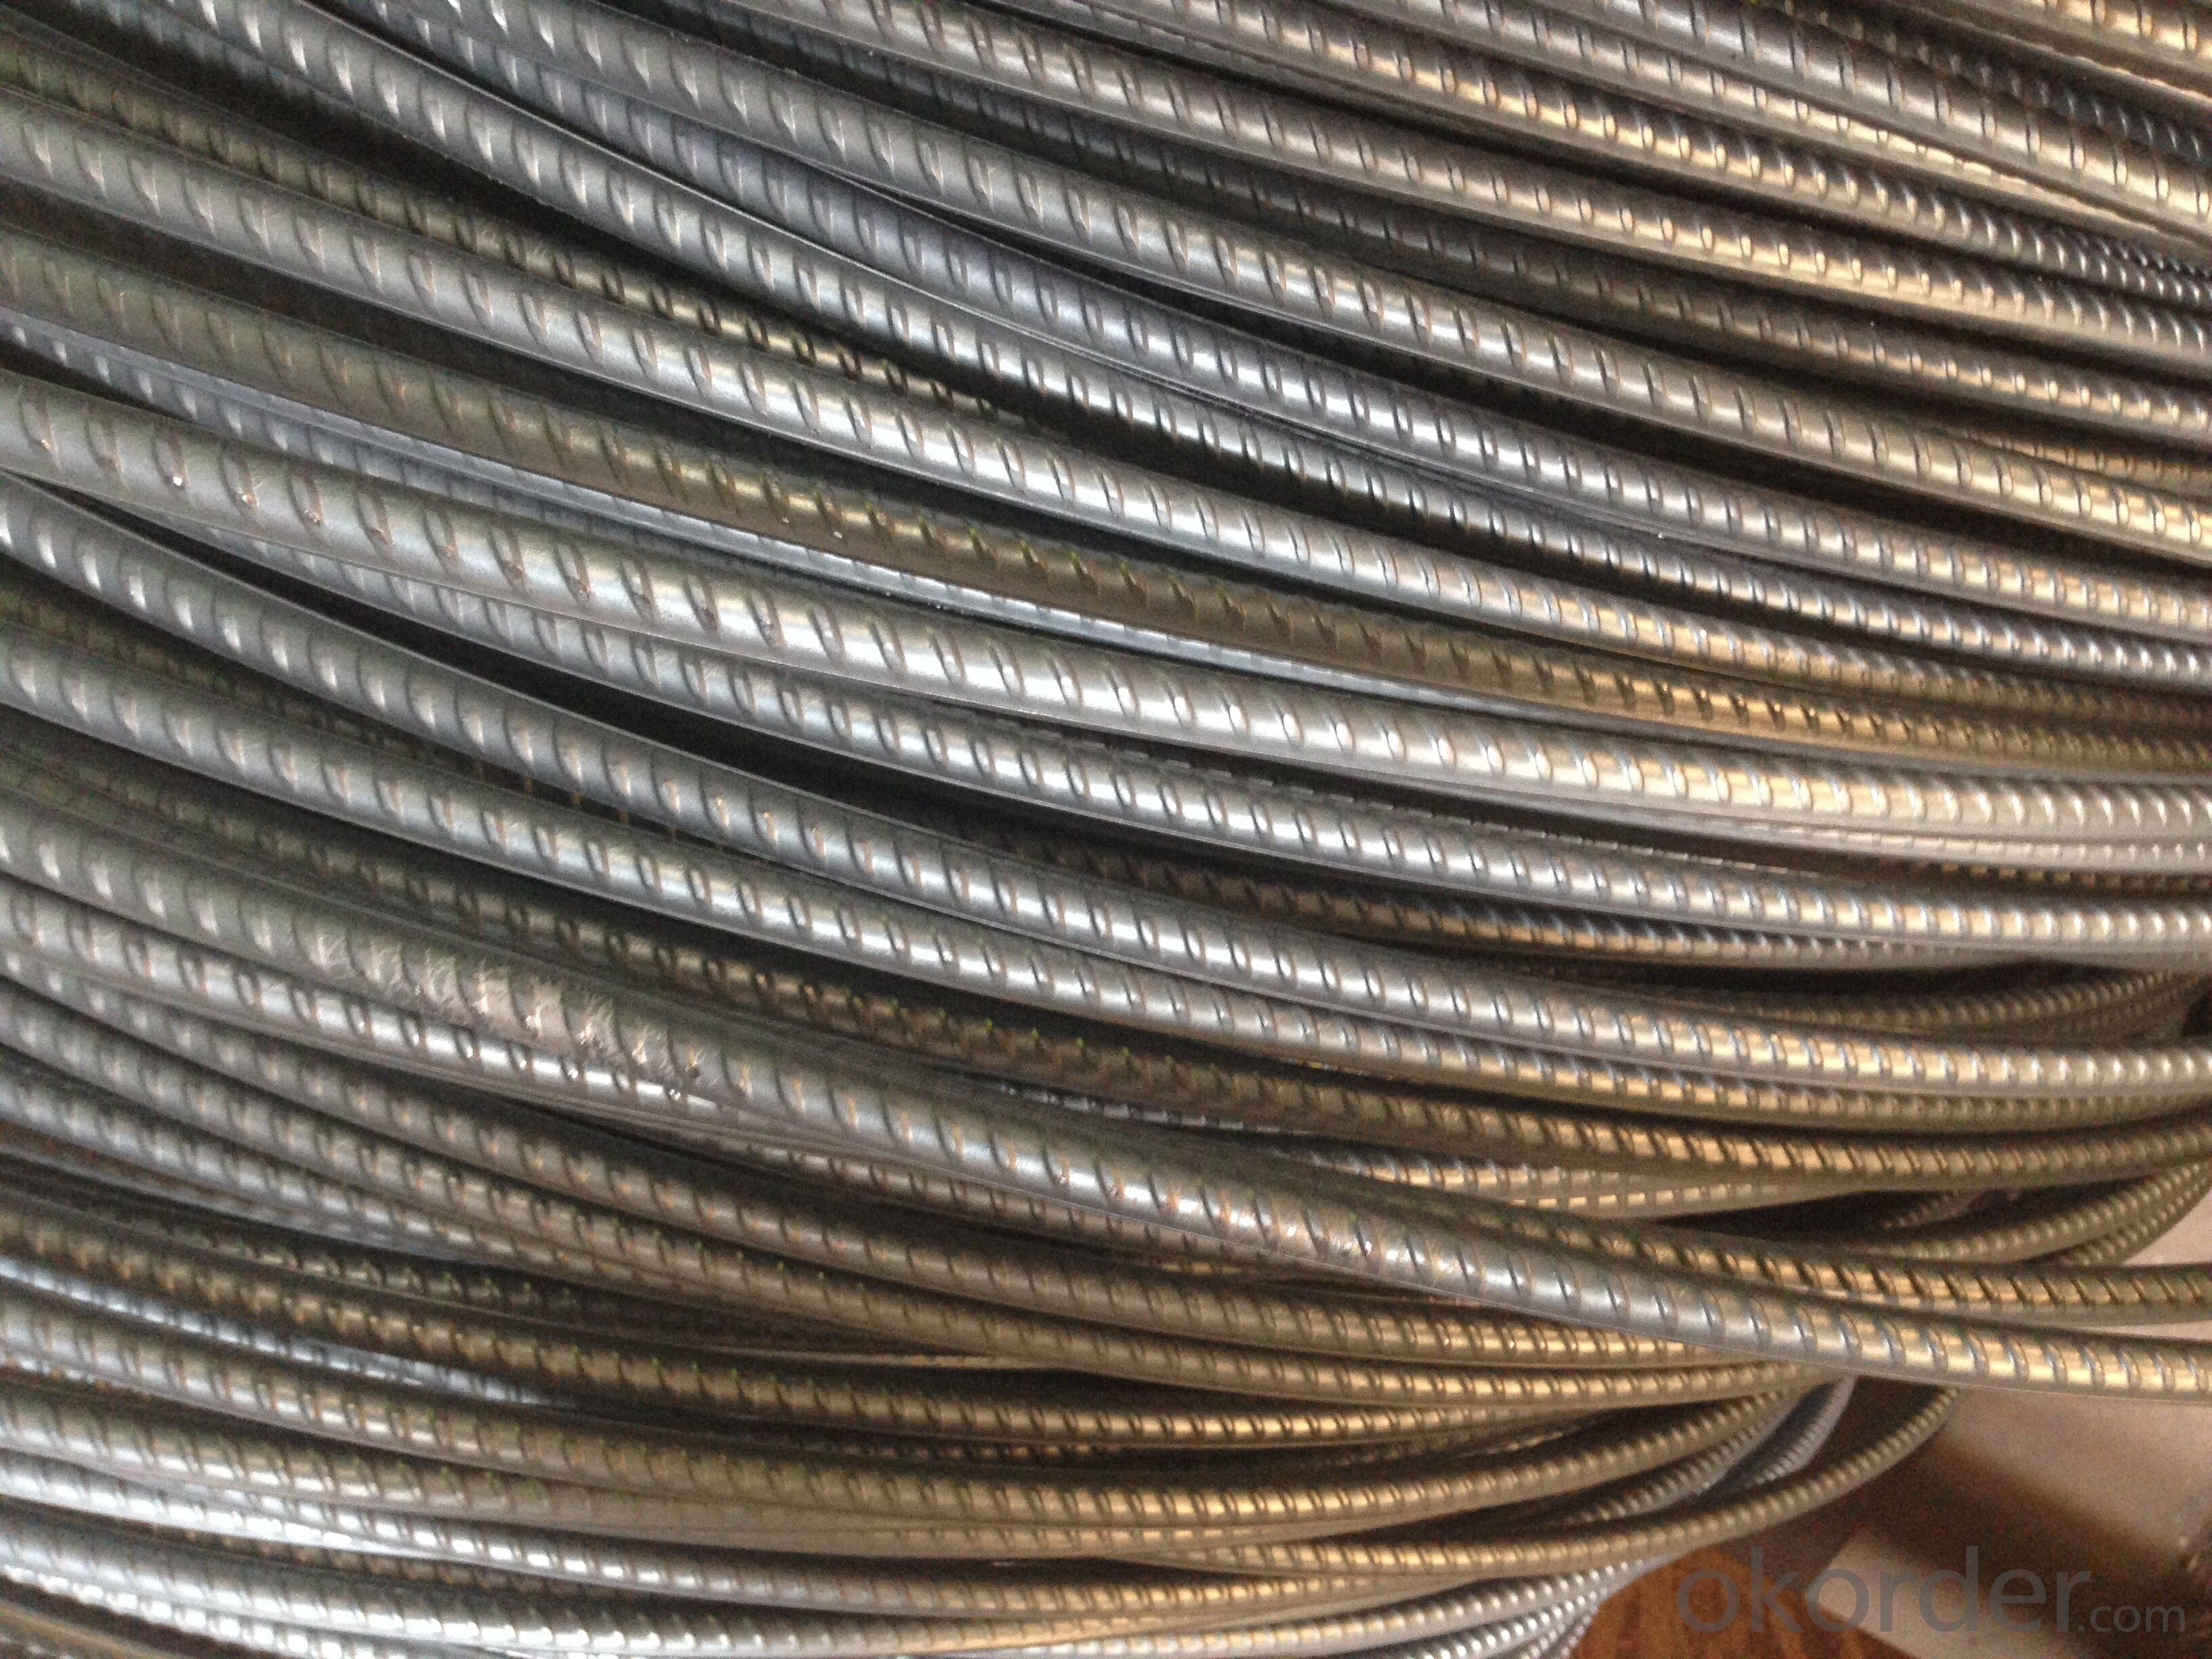 reinforcing bar steel rebars in bundles construction building material